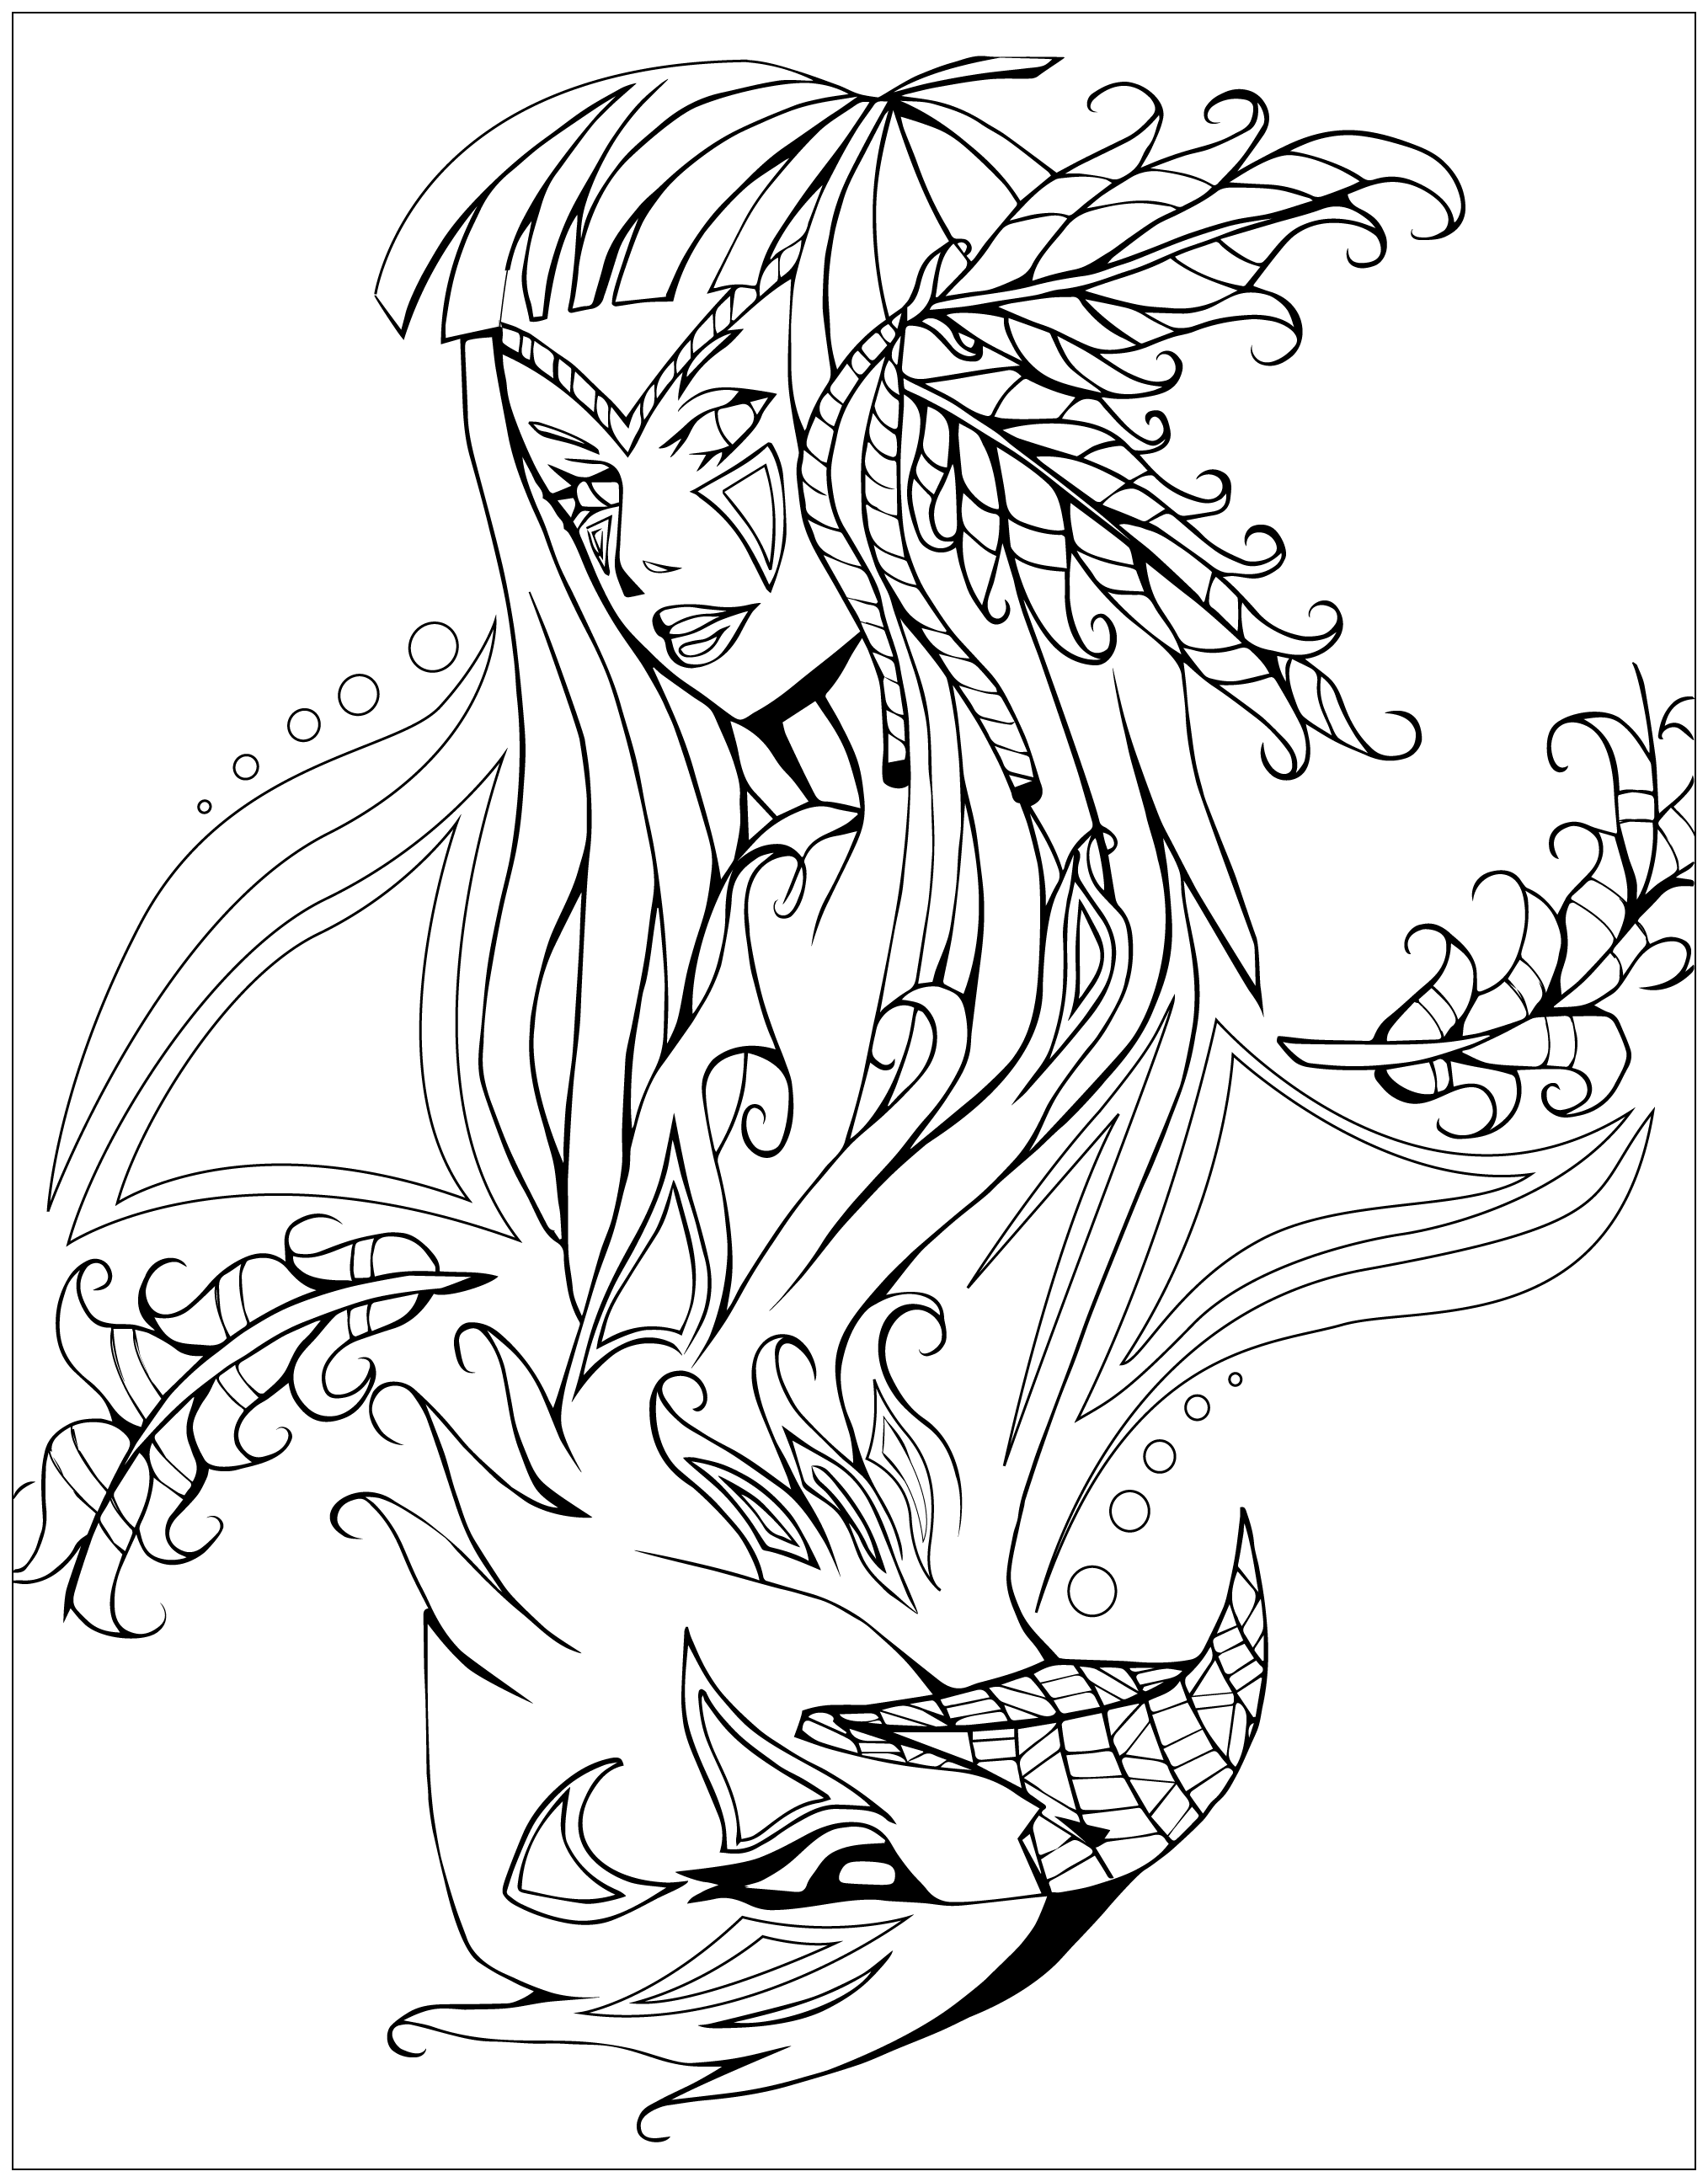 Coloring page native american indian savage spirit